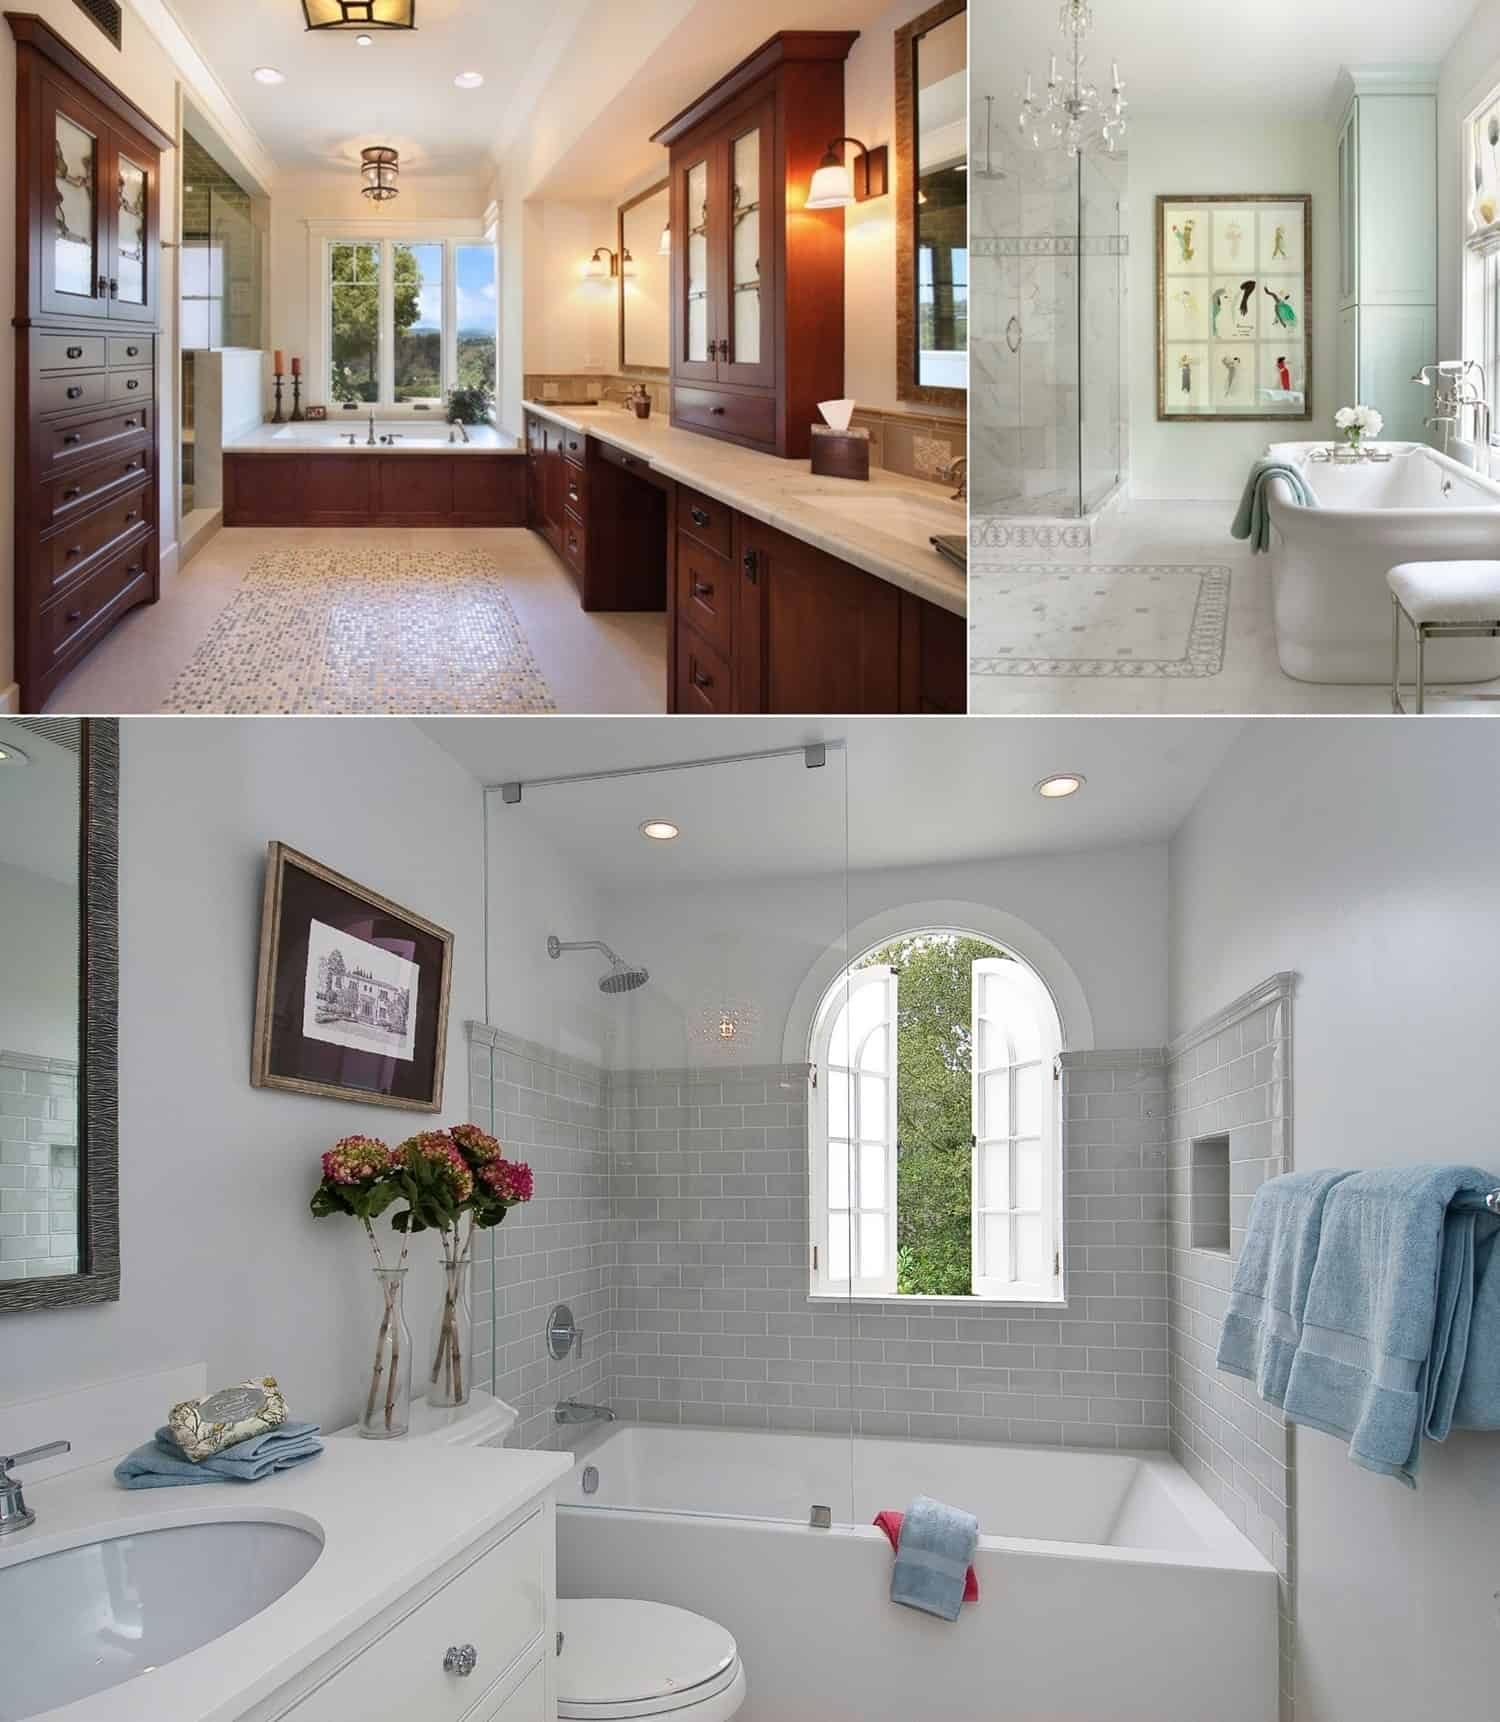 CHOOSE THE RIGHT TYPE OF A BATHTUB